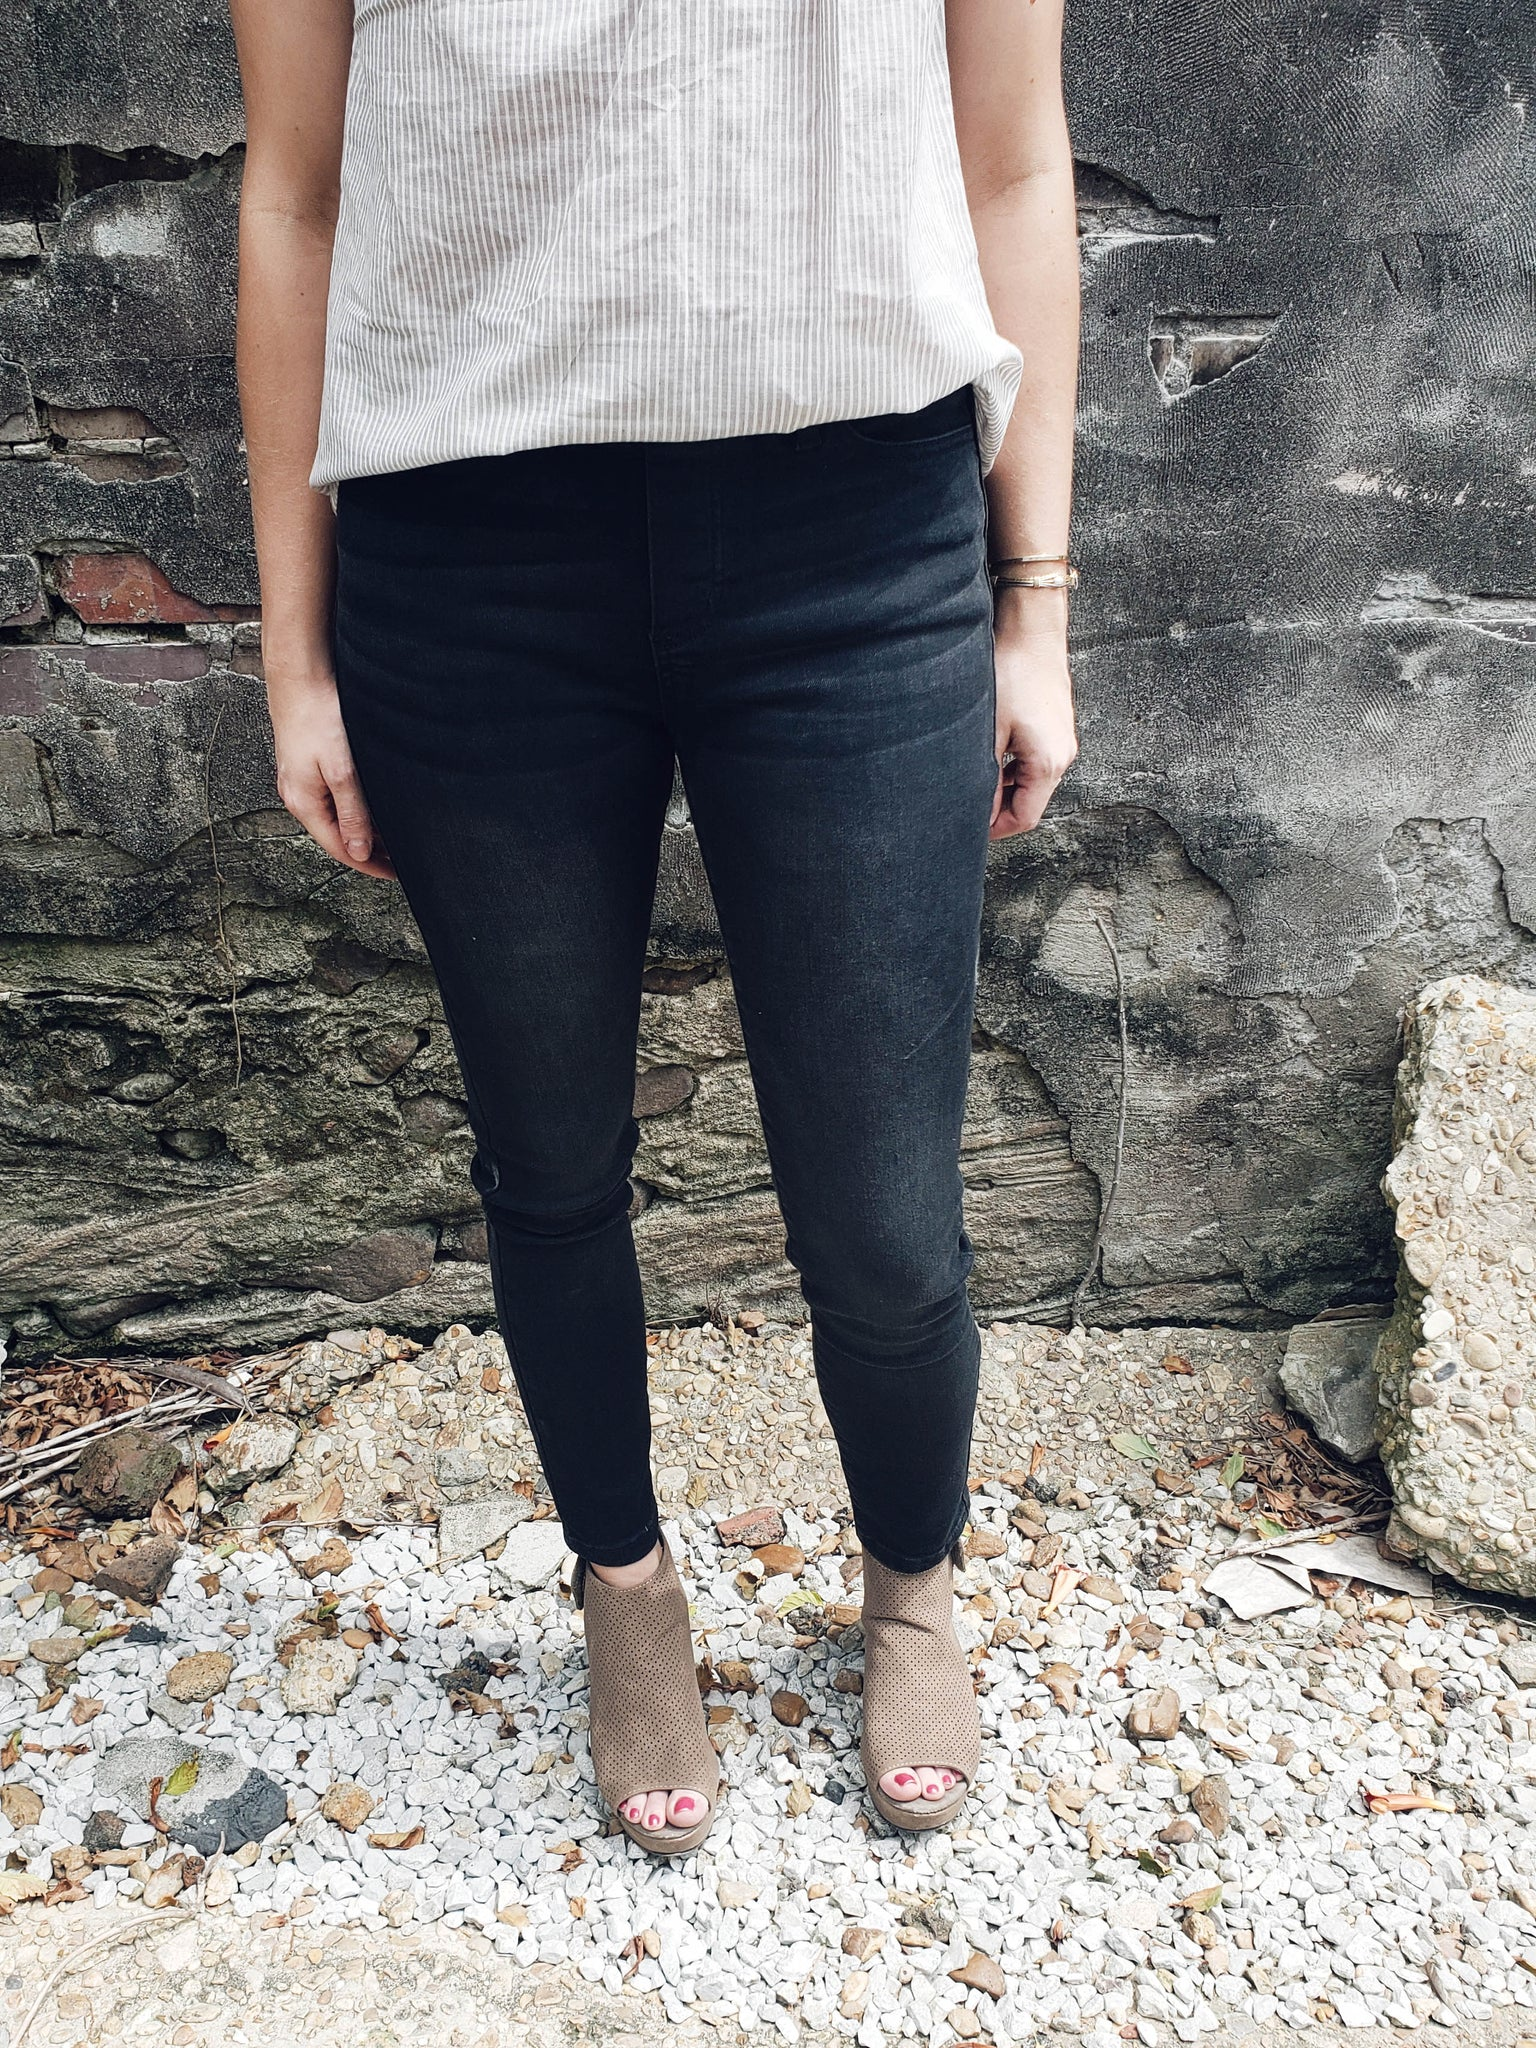 Dinner Out Jeans in Black - Enclothe Boutique